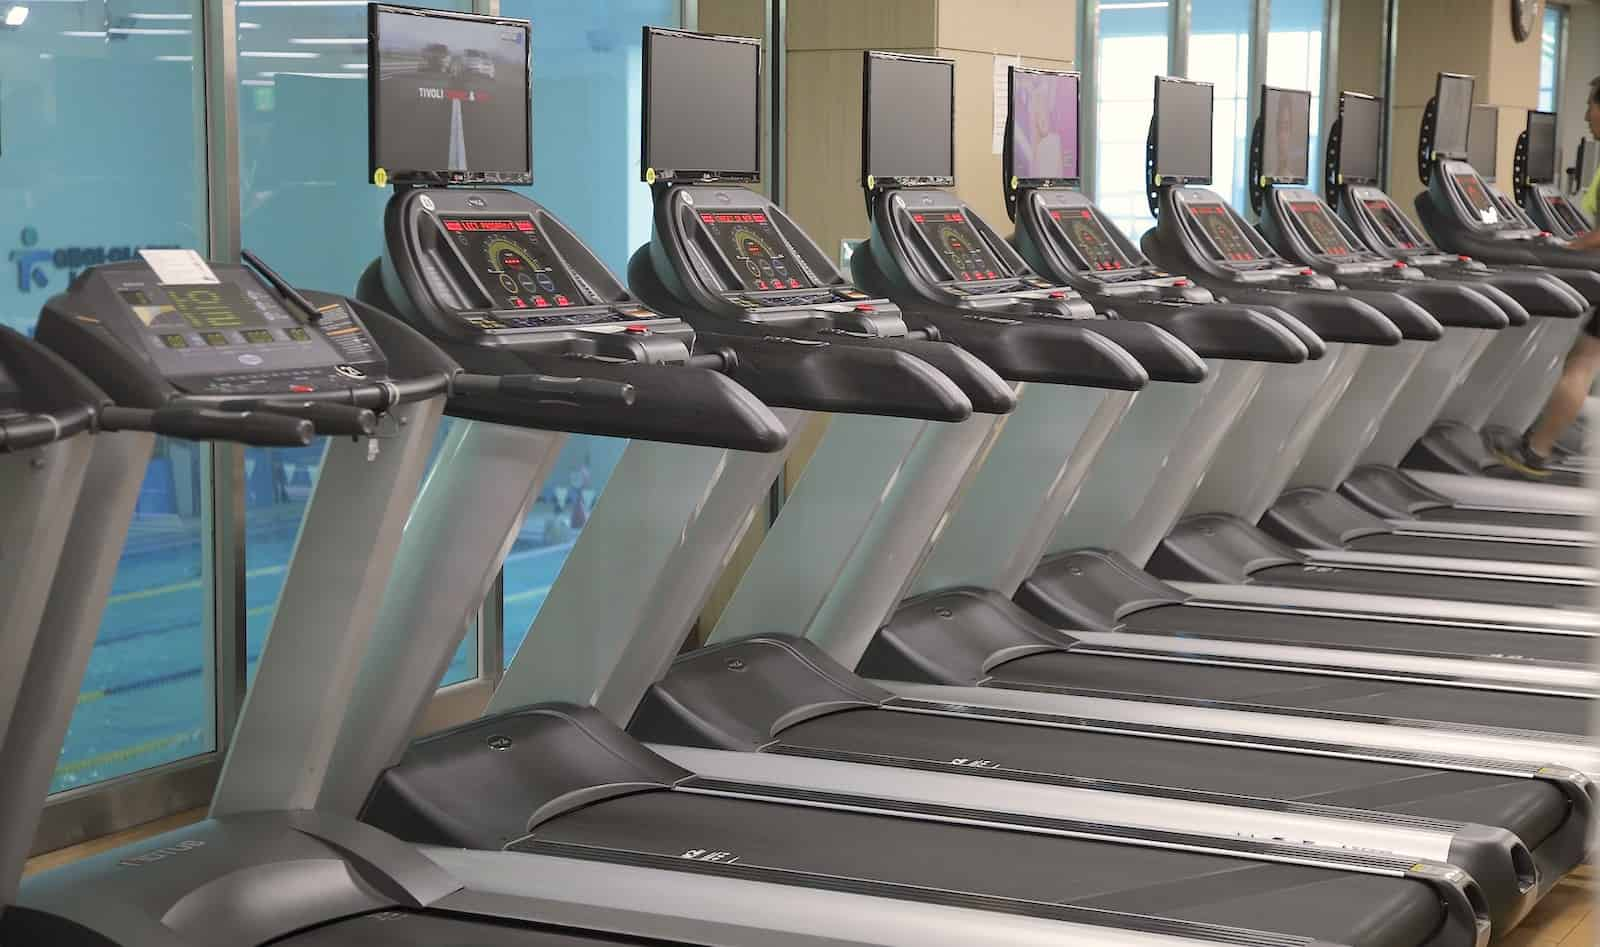 Top Tips To Make Treadmill Workouts More Fun